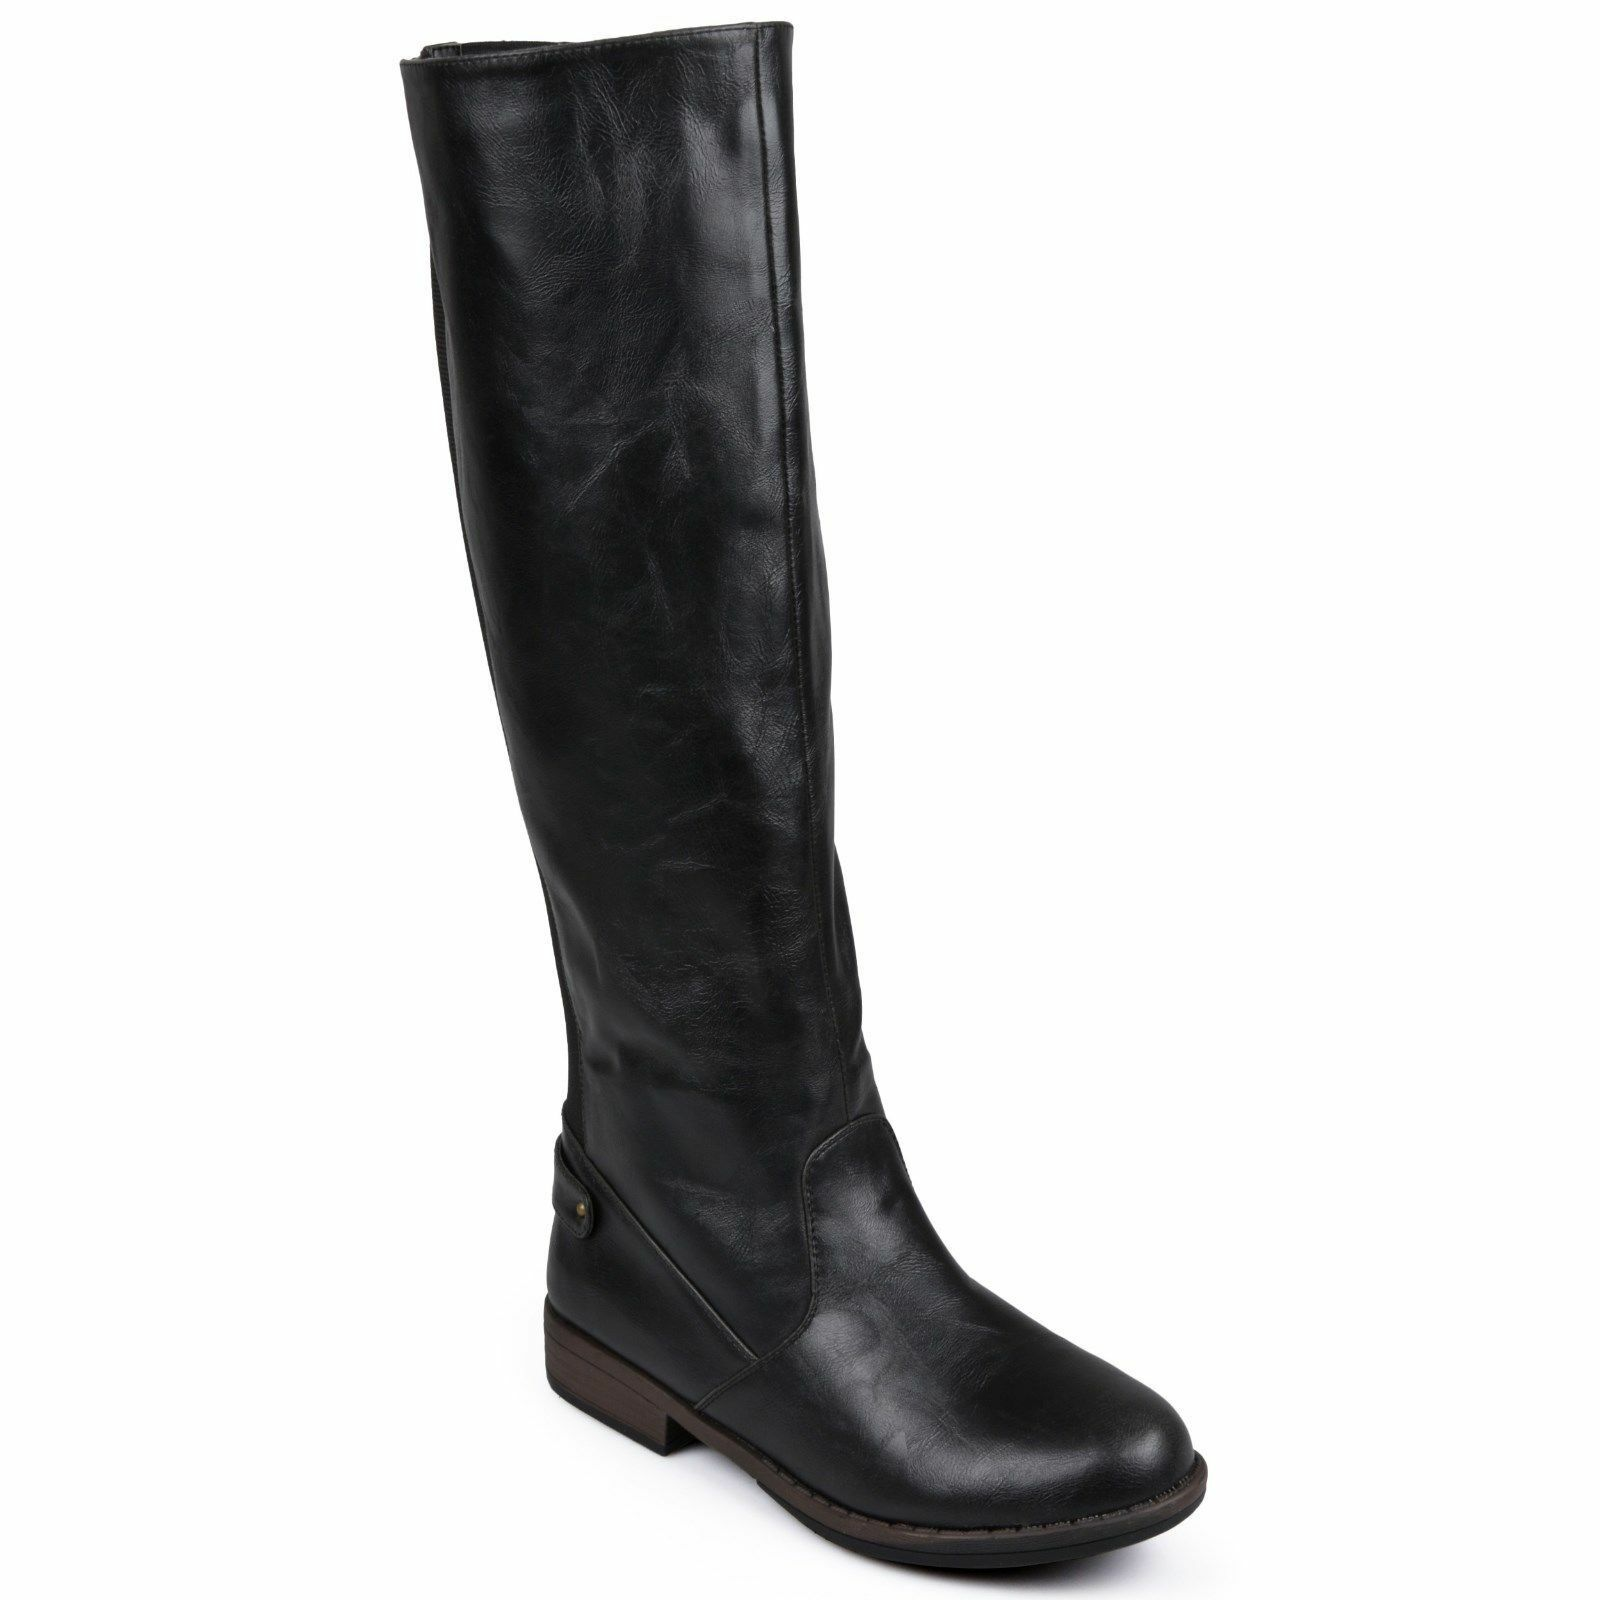 New JOURNEE COLLECTION LYNN BLACK TALL BOOTS 7 M